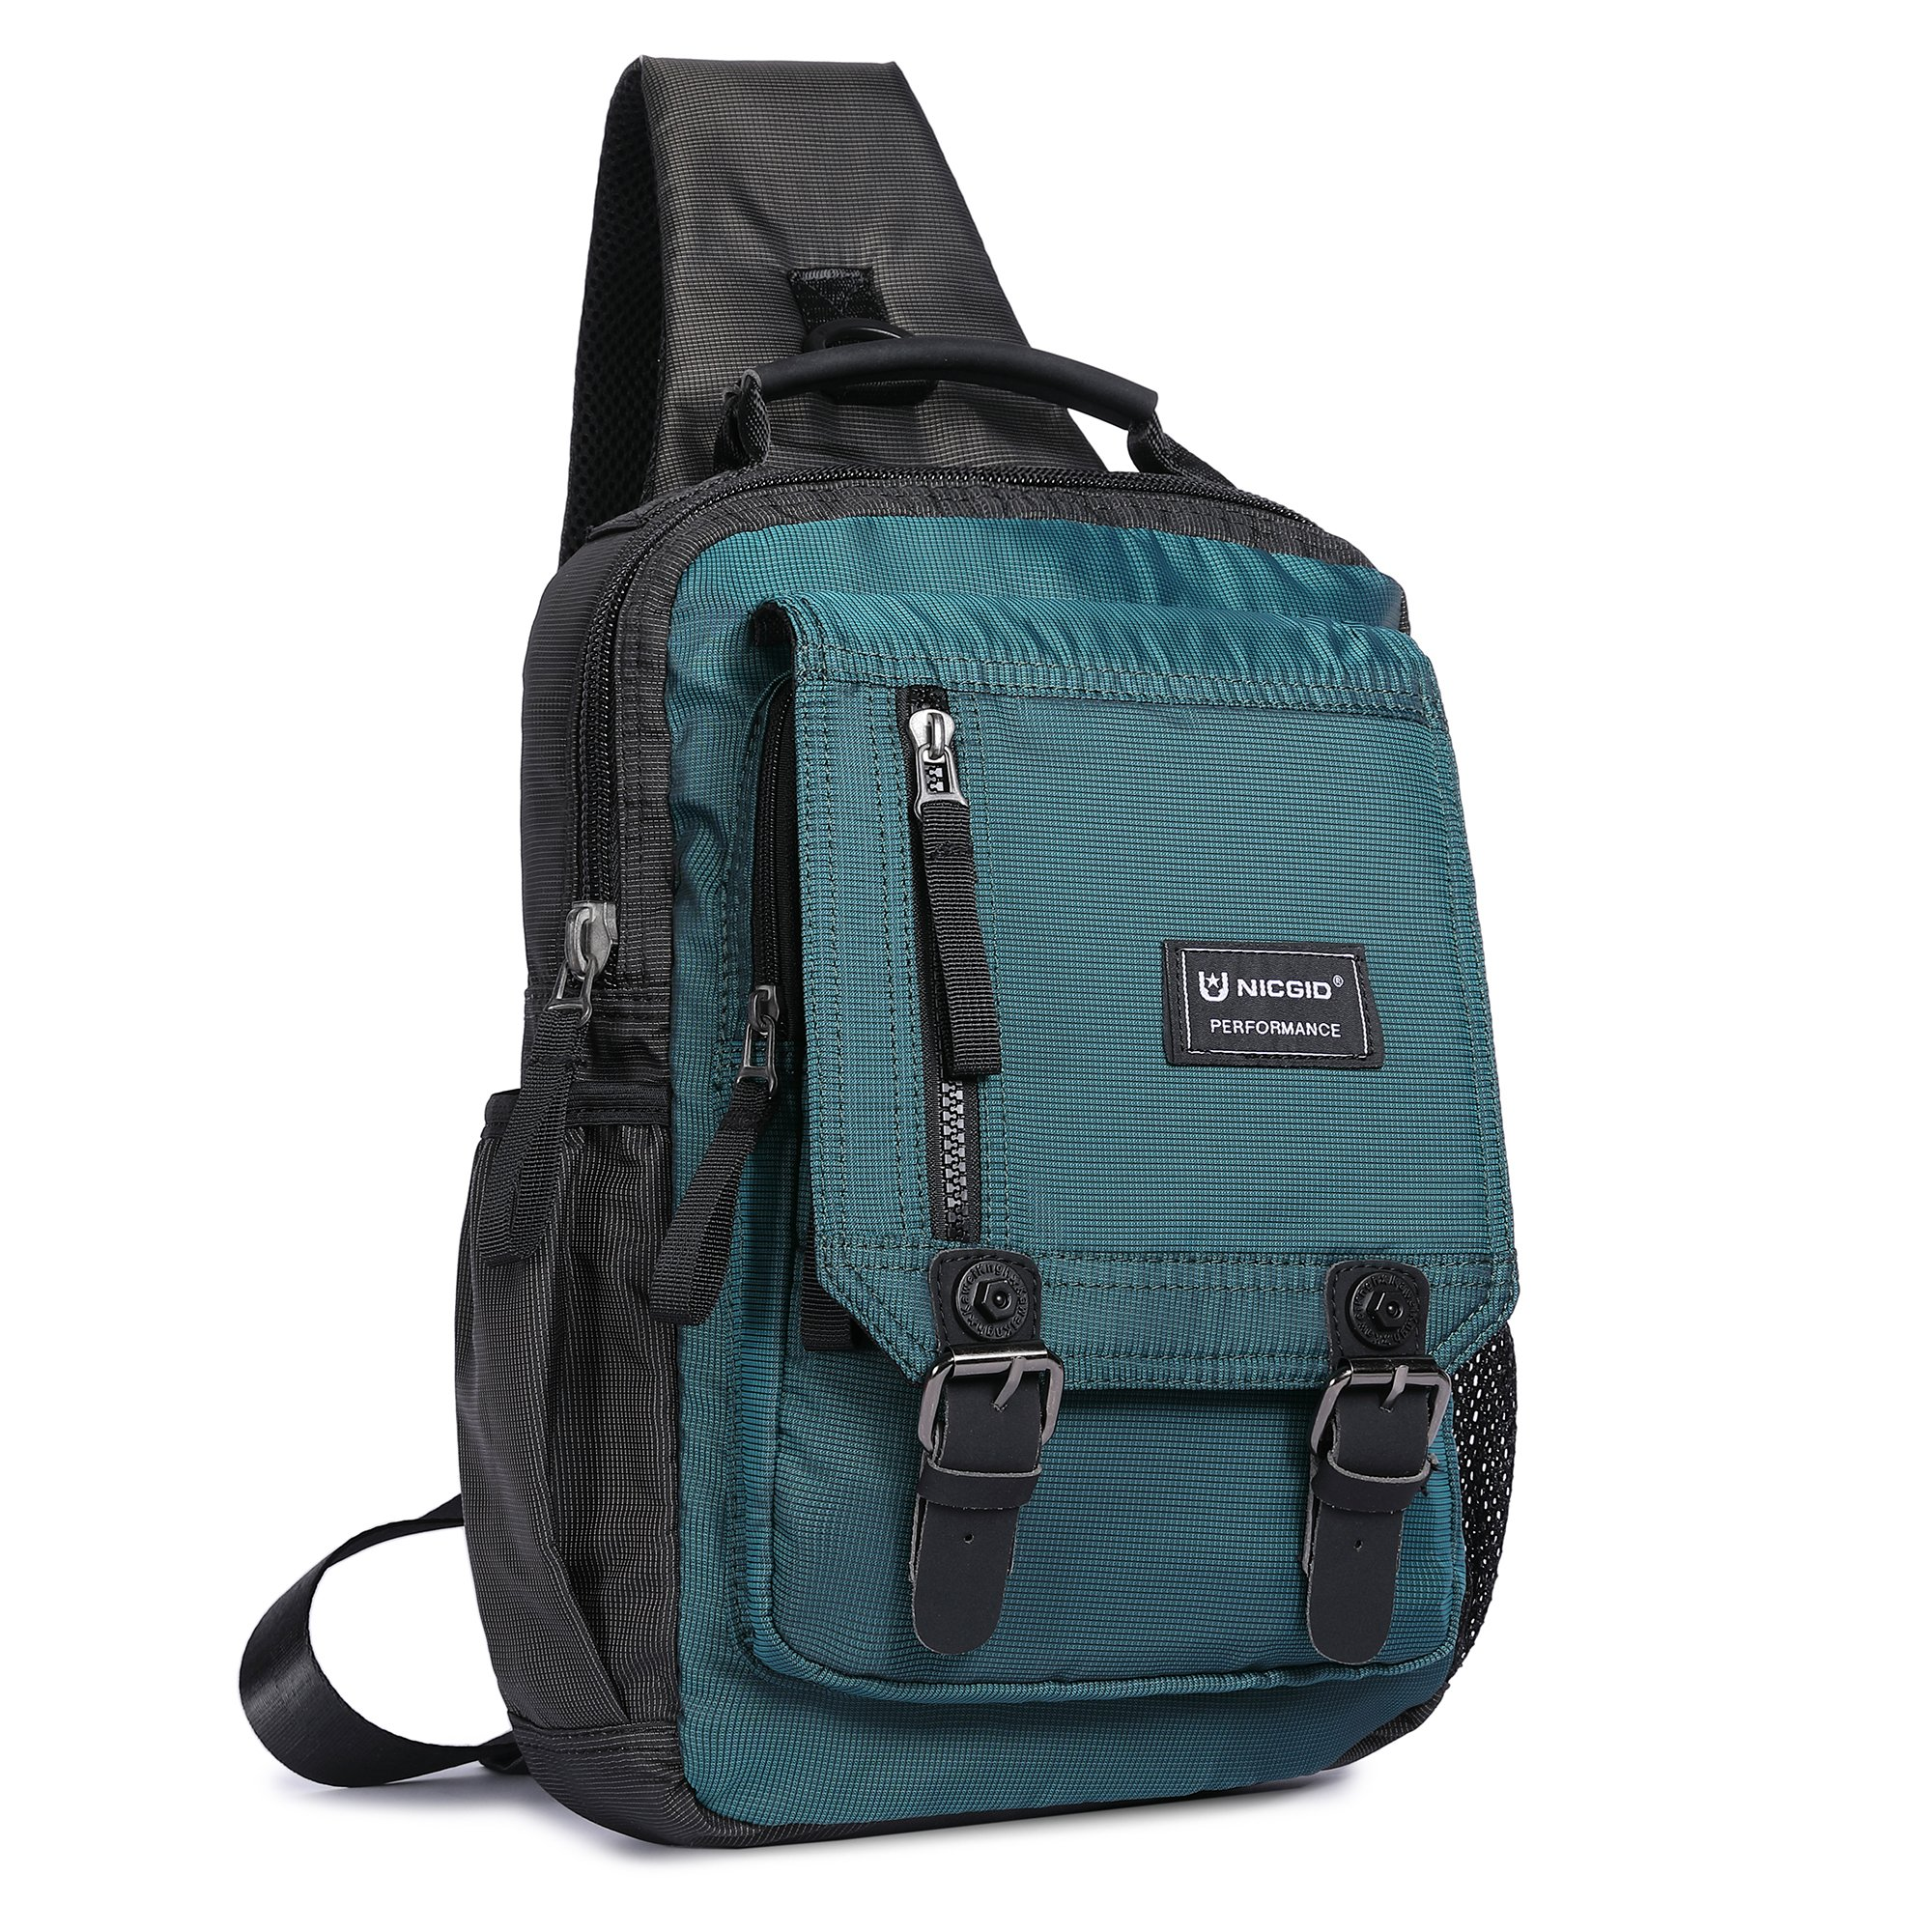 Sling Bag Cross Body Messenger Bag One Strap Backpack Travel Shoulder Bag for Laptop Tablet iPad Outdoor Hiking (Dark Green)